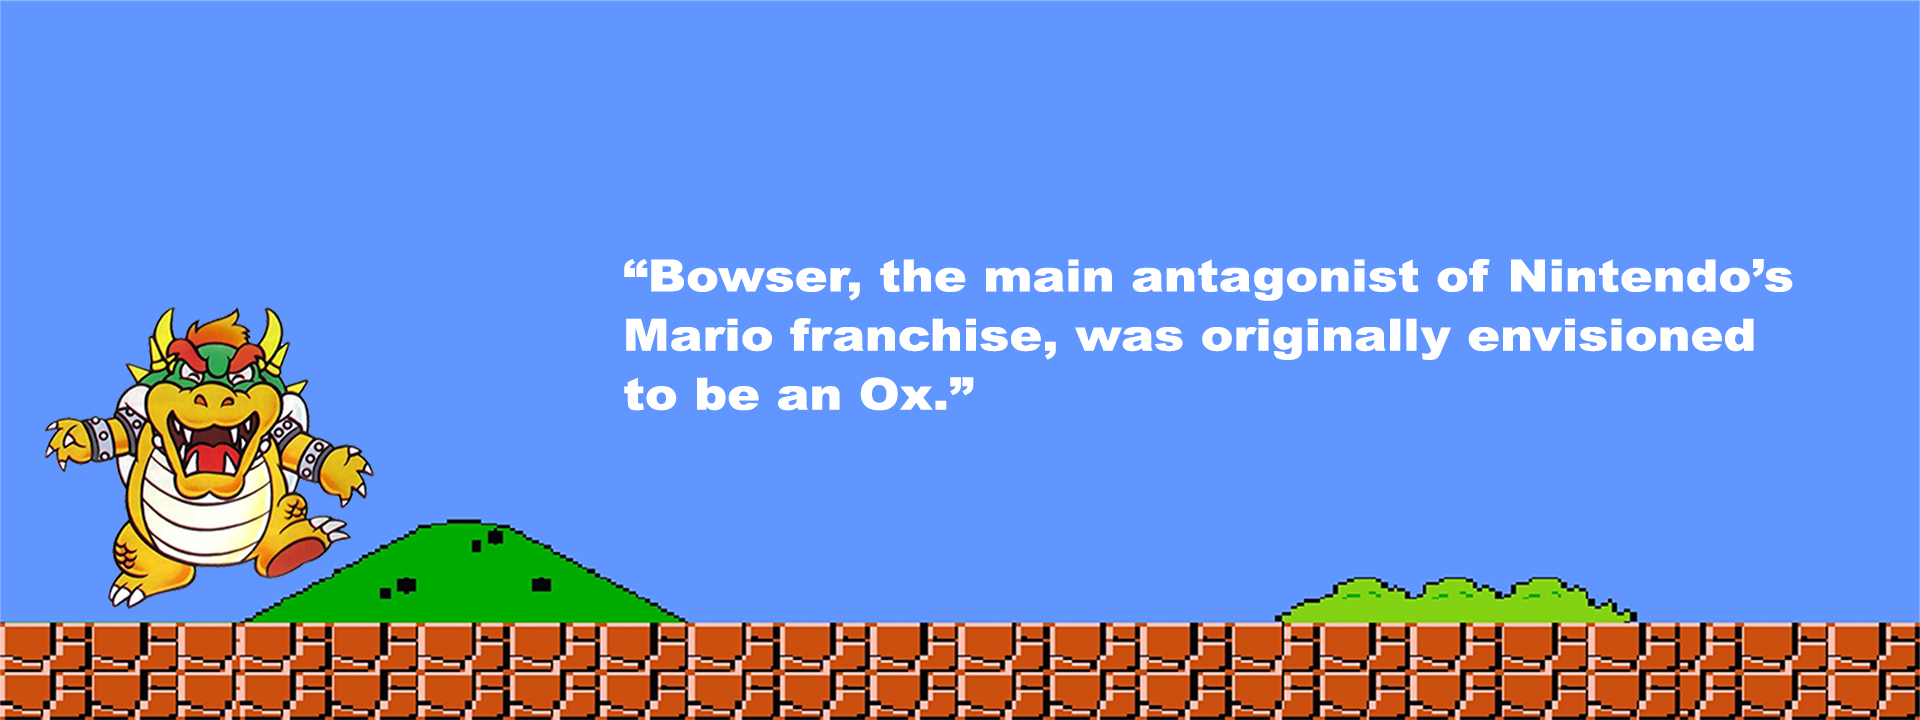 12 Fun Facts About Classic Video Games